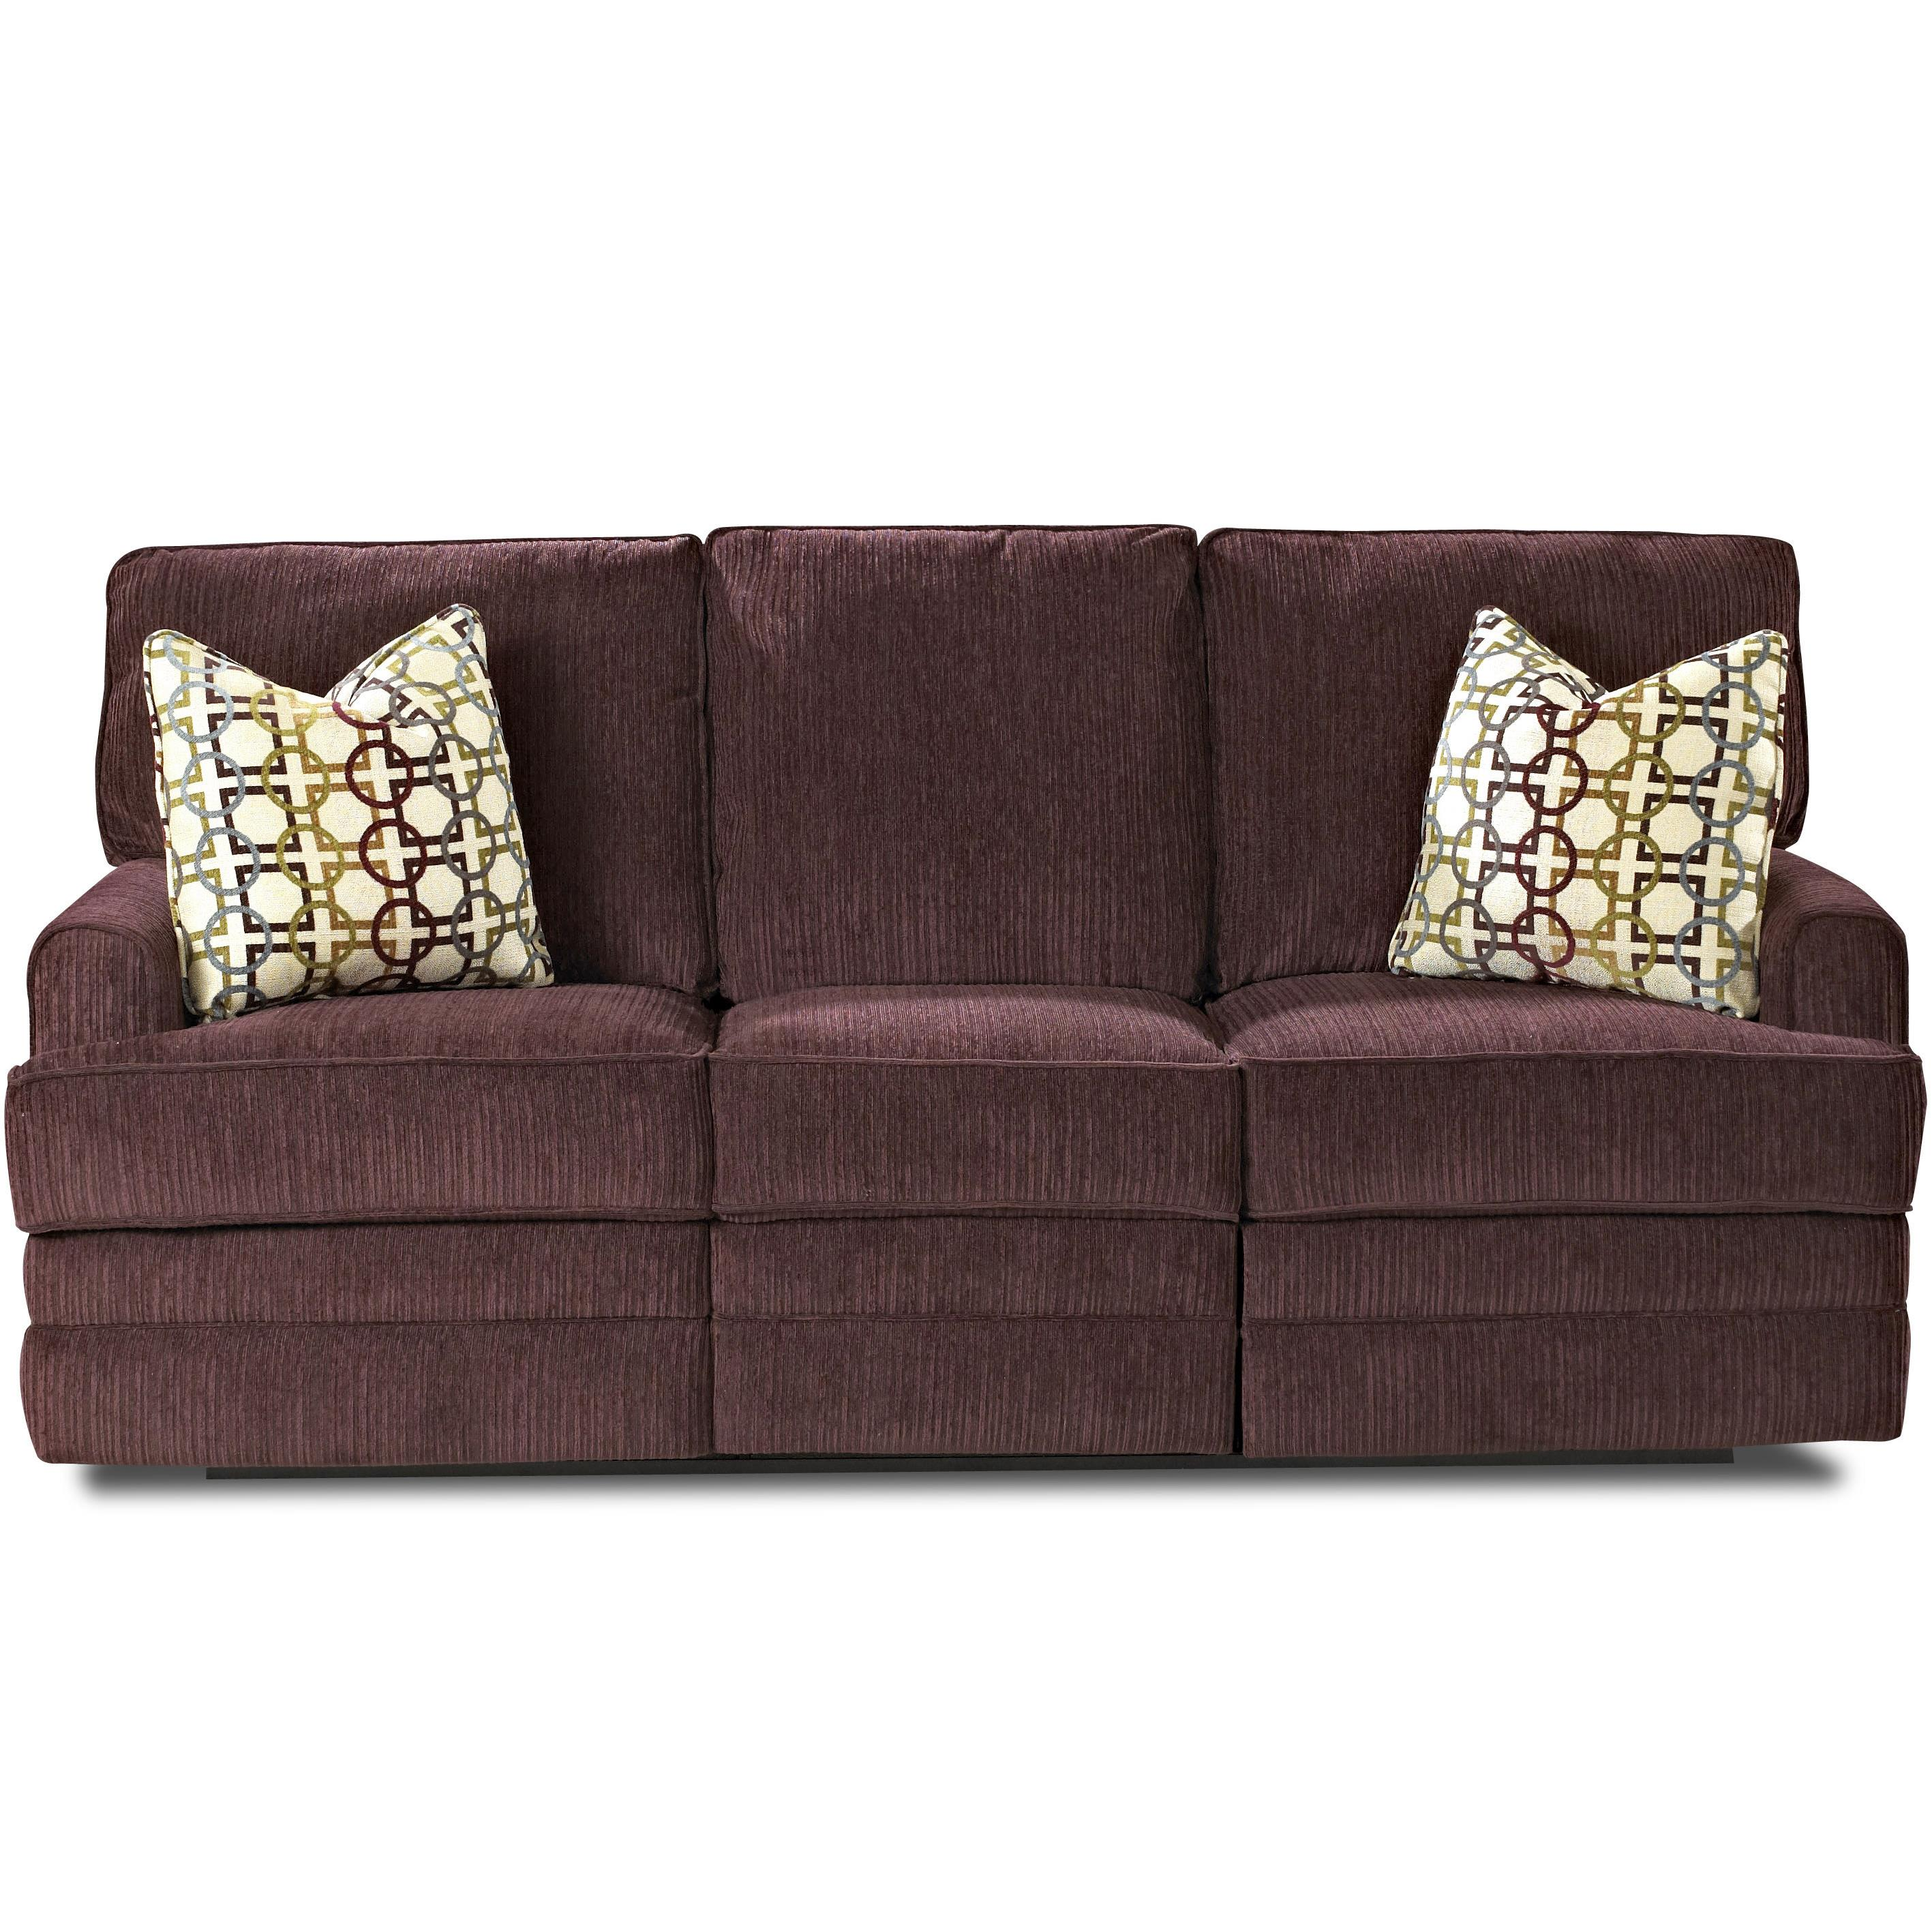 Klaussner Callahan Casual Reclining Sofa with Track Arms  : products2Fklaussner2Fcolor2Fcallahan20788037880320rs korey20eggplant b0 from www.suburbanfurniture.com size 2834 x 2834 jpeg 790kB